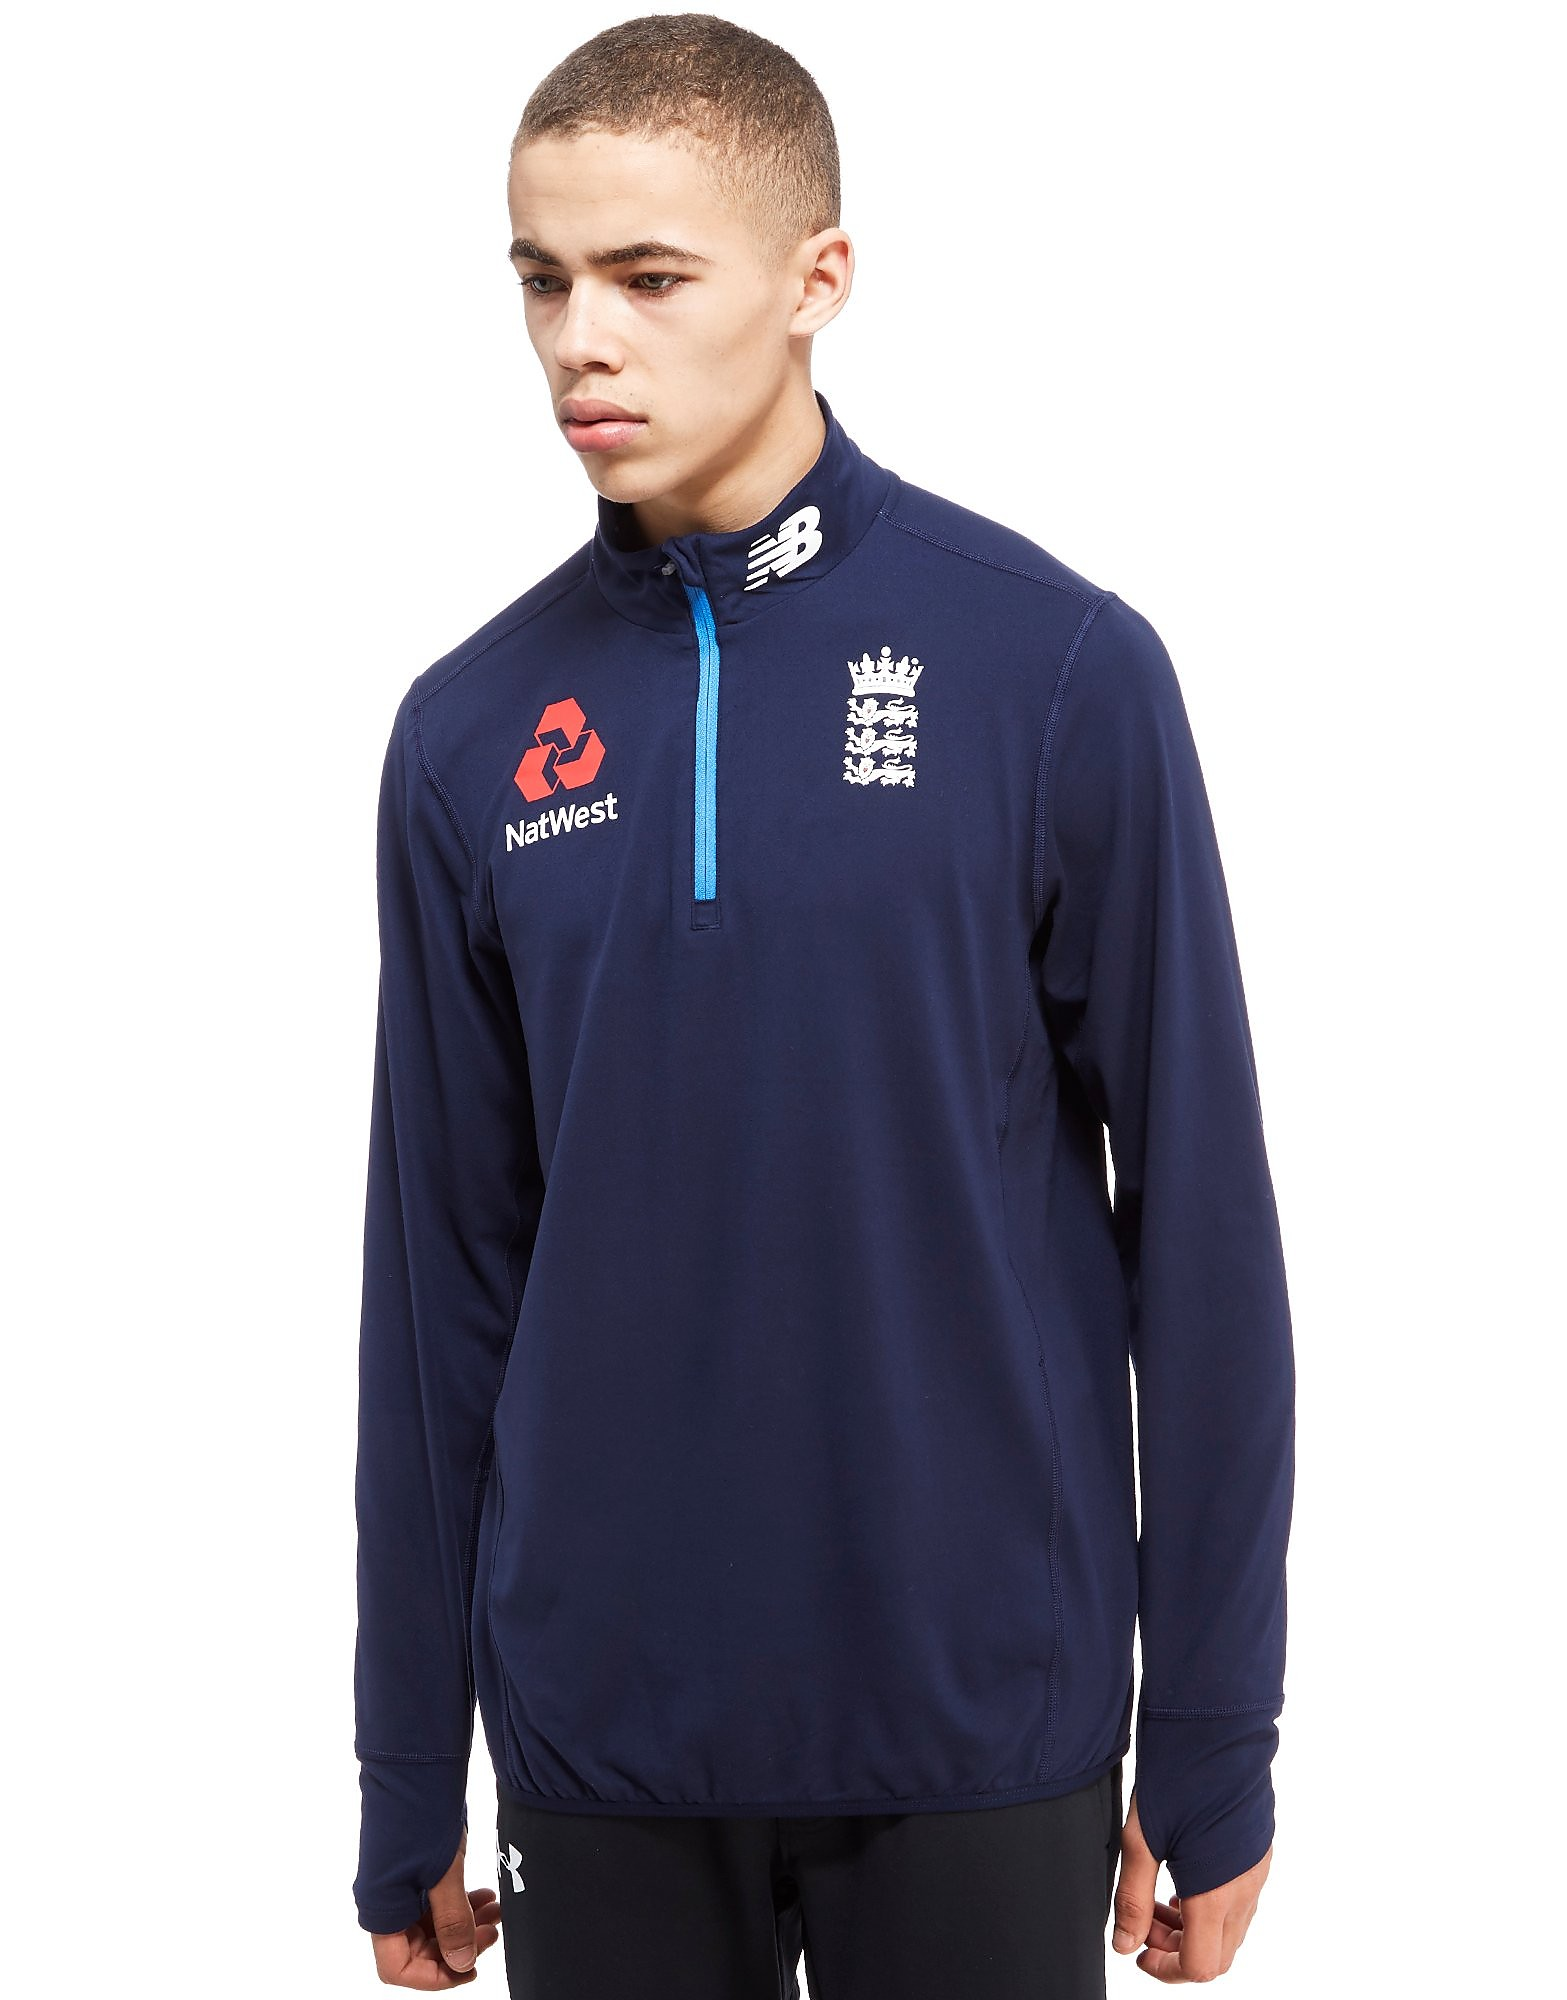 New Balance ECB Training 1/4 Zip Top